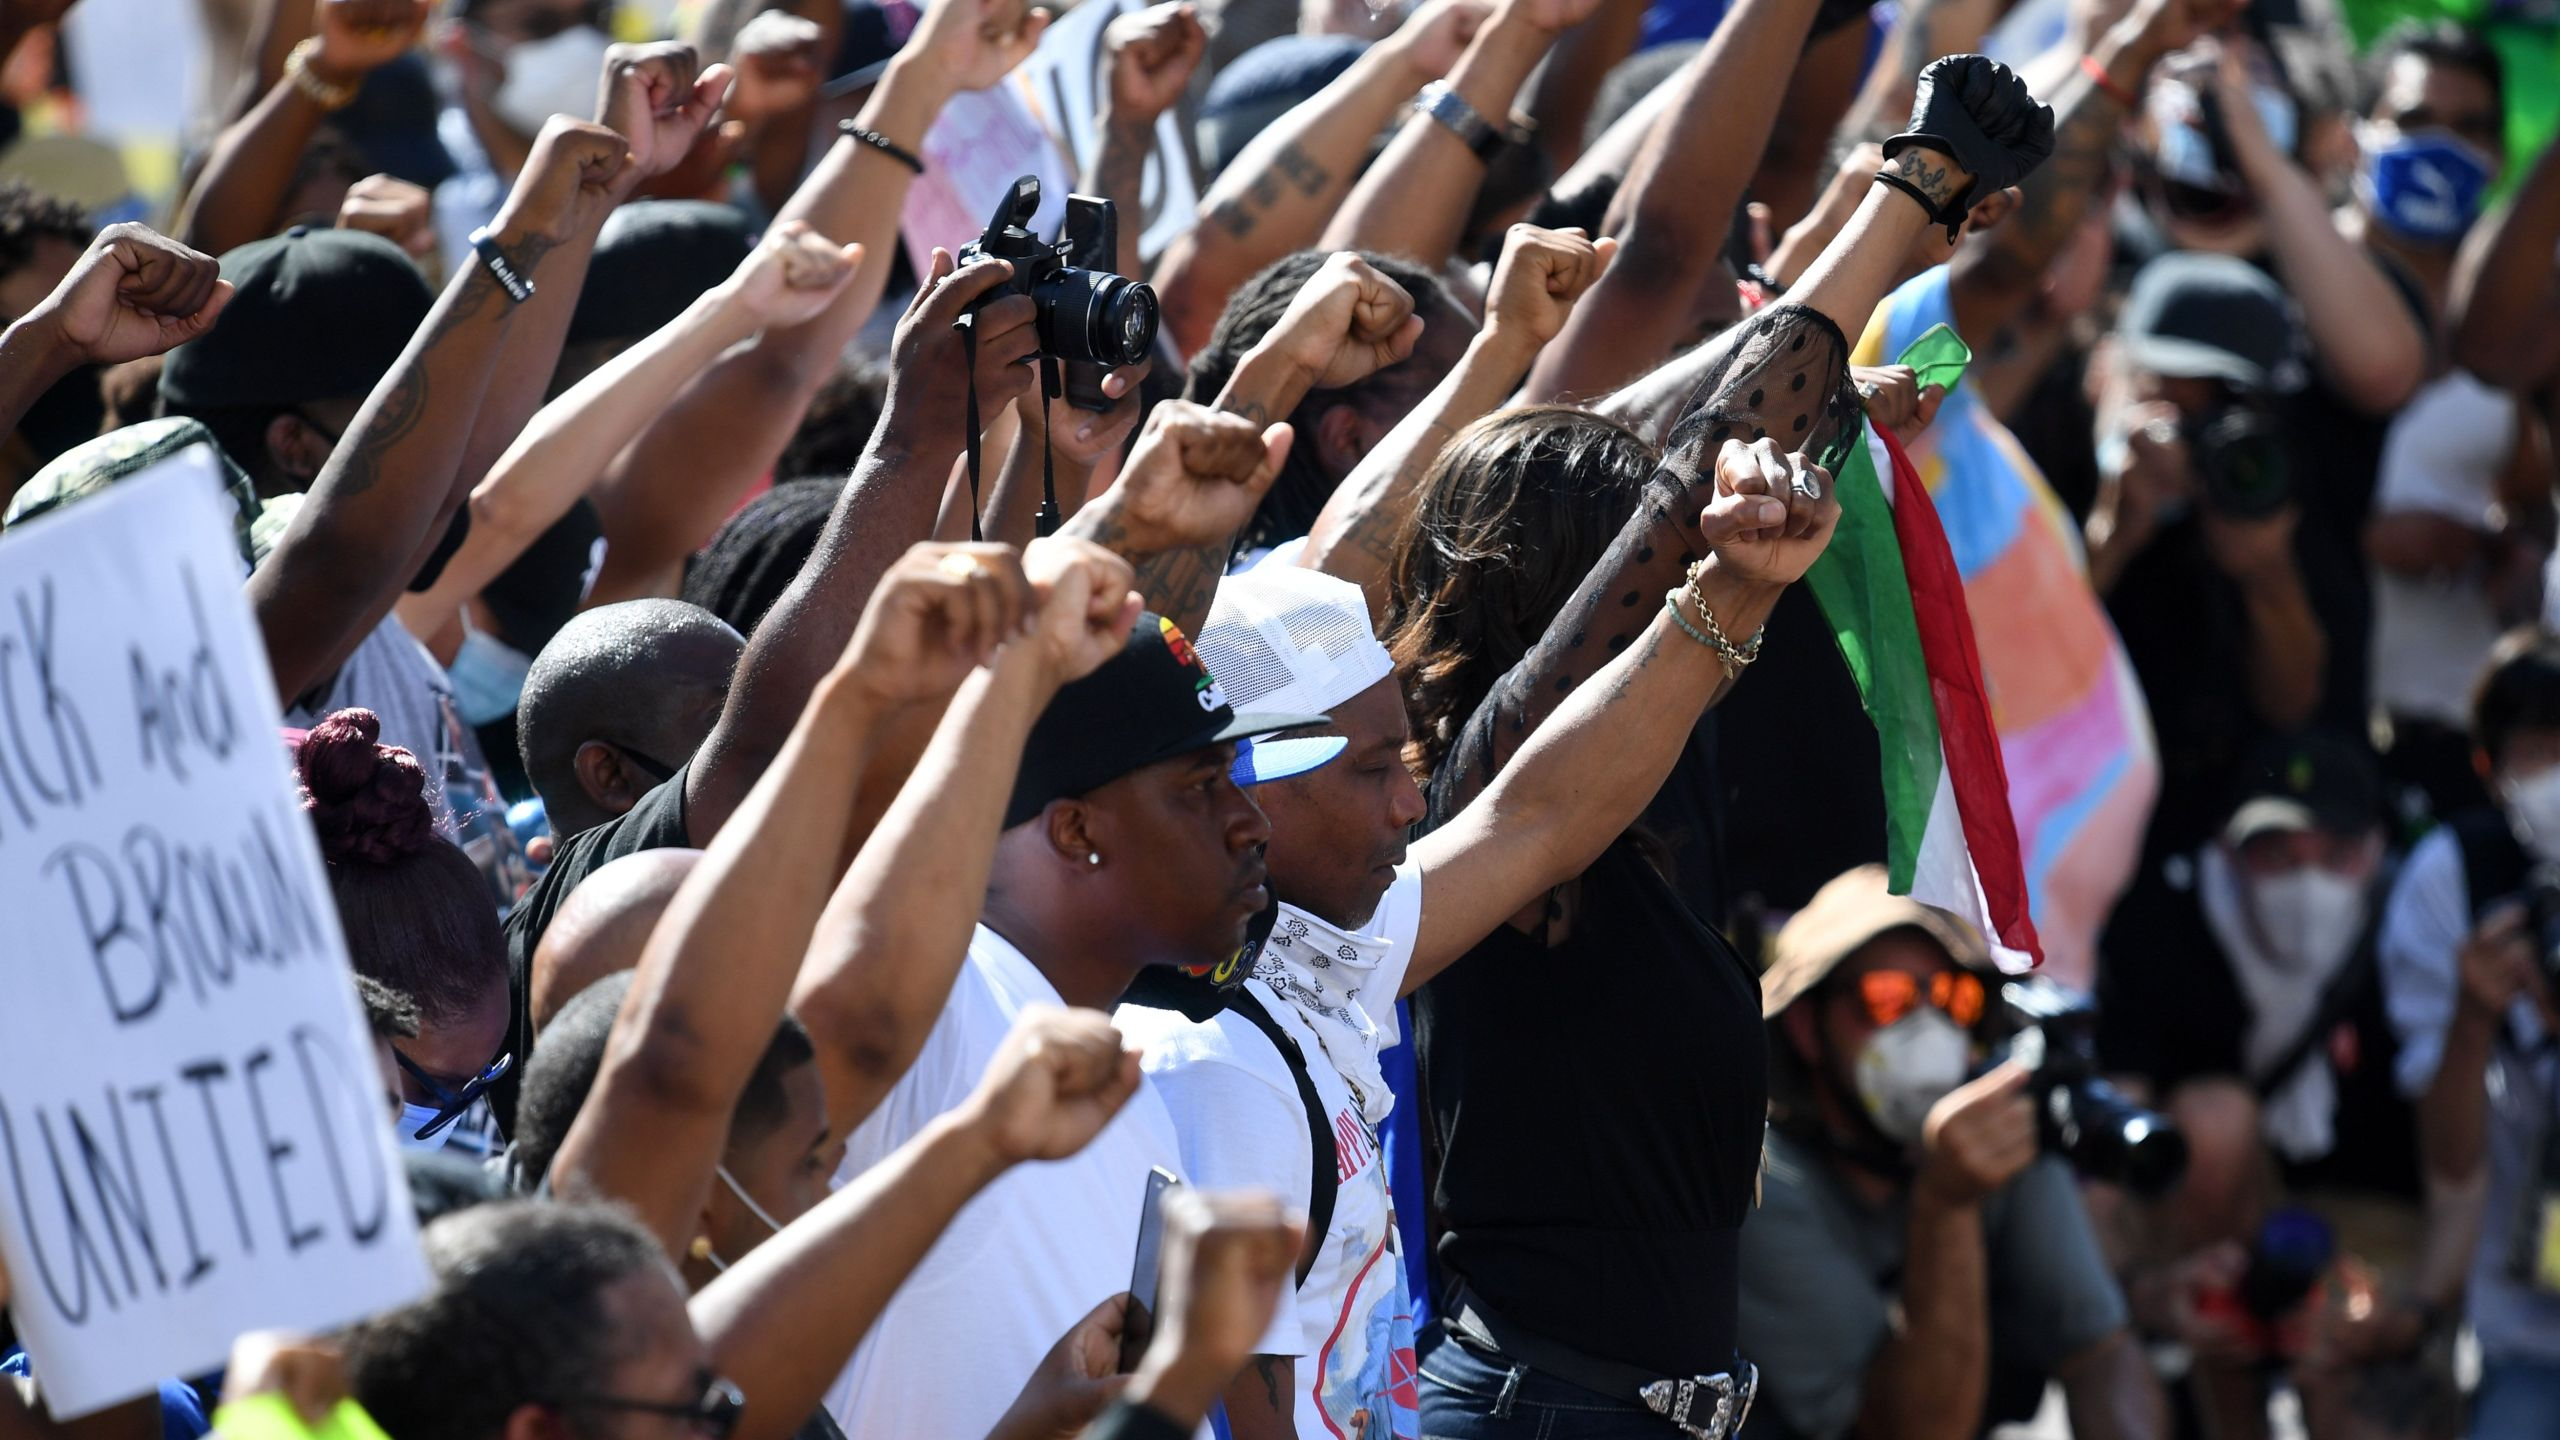 Activists and supporters of the Black and Brown Unity March raise their fists as the two groups march from different directions to meet in front of Los Angeles City Hall on July 12, 2020. (Robyn Beck / AFP / Getty Images)